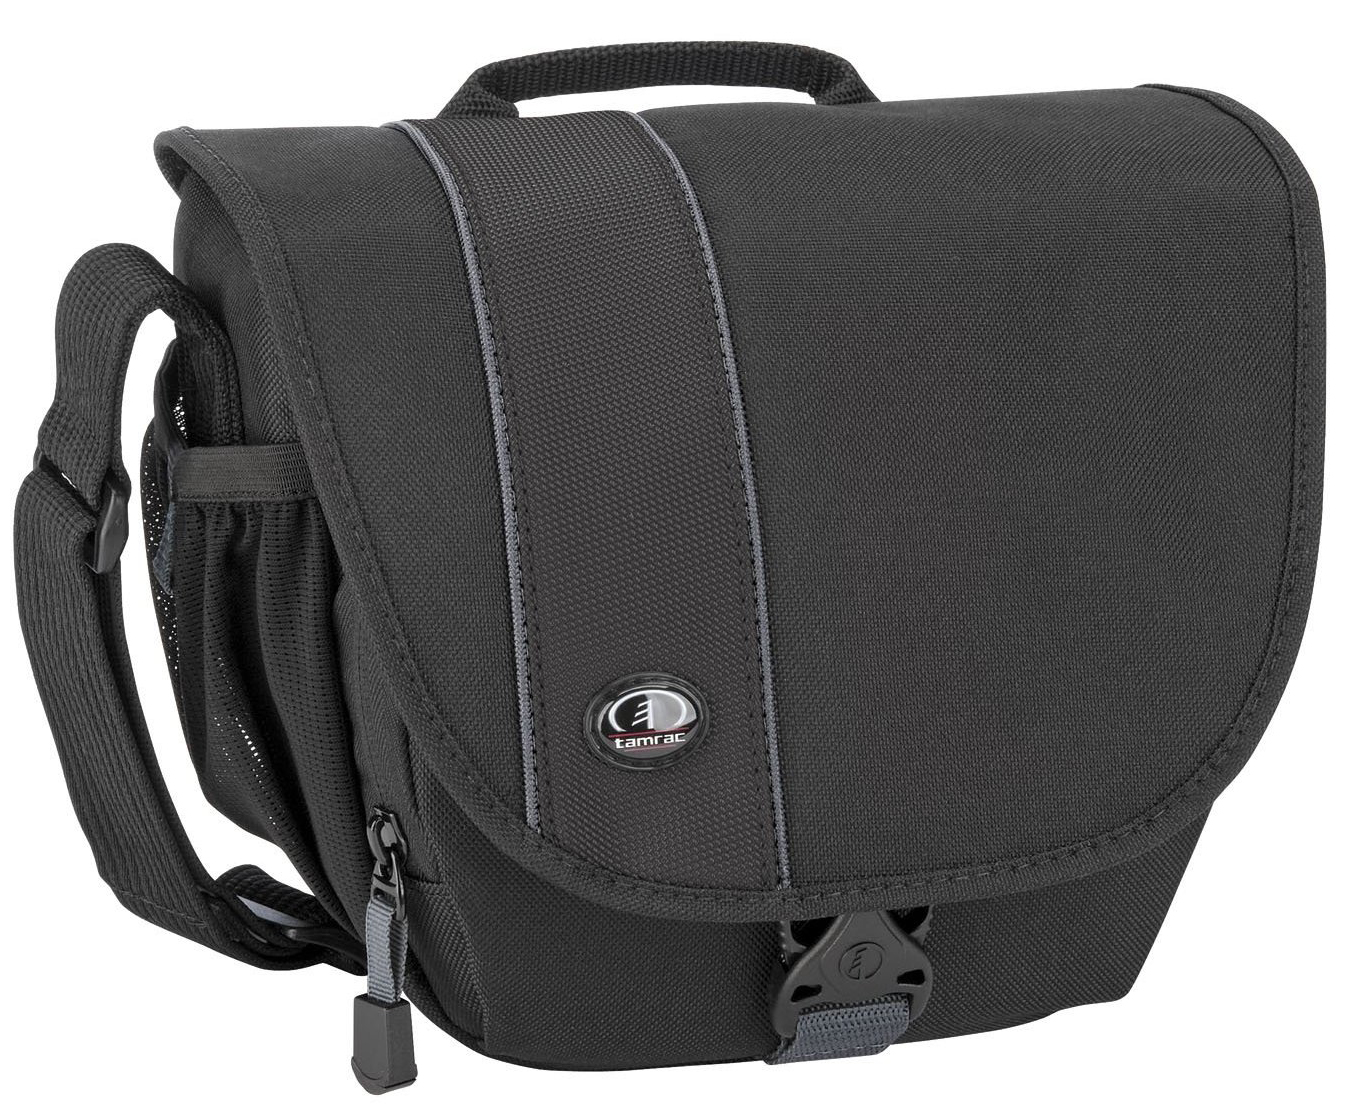 3442 RALLY 2 Camera Bag (Black)